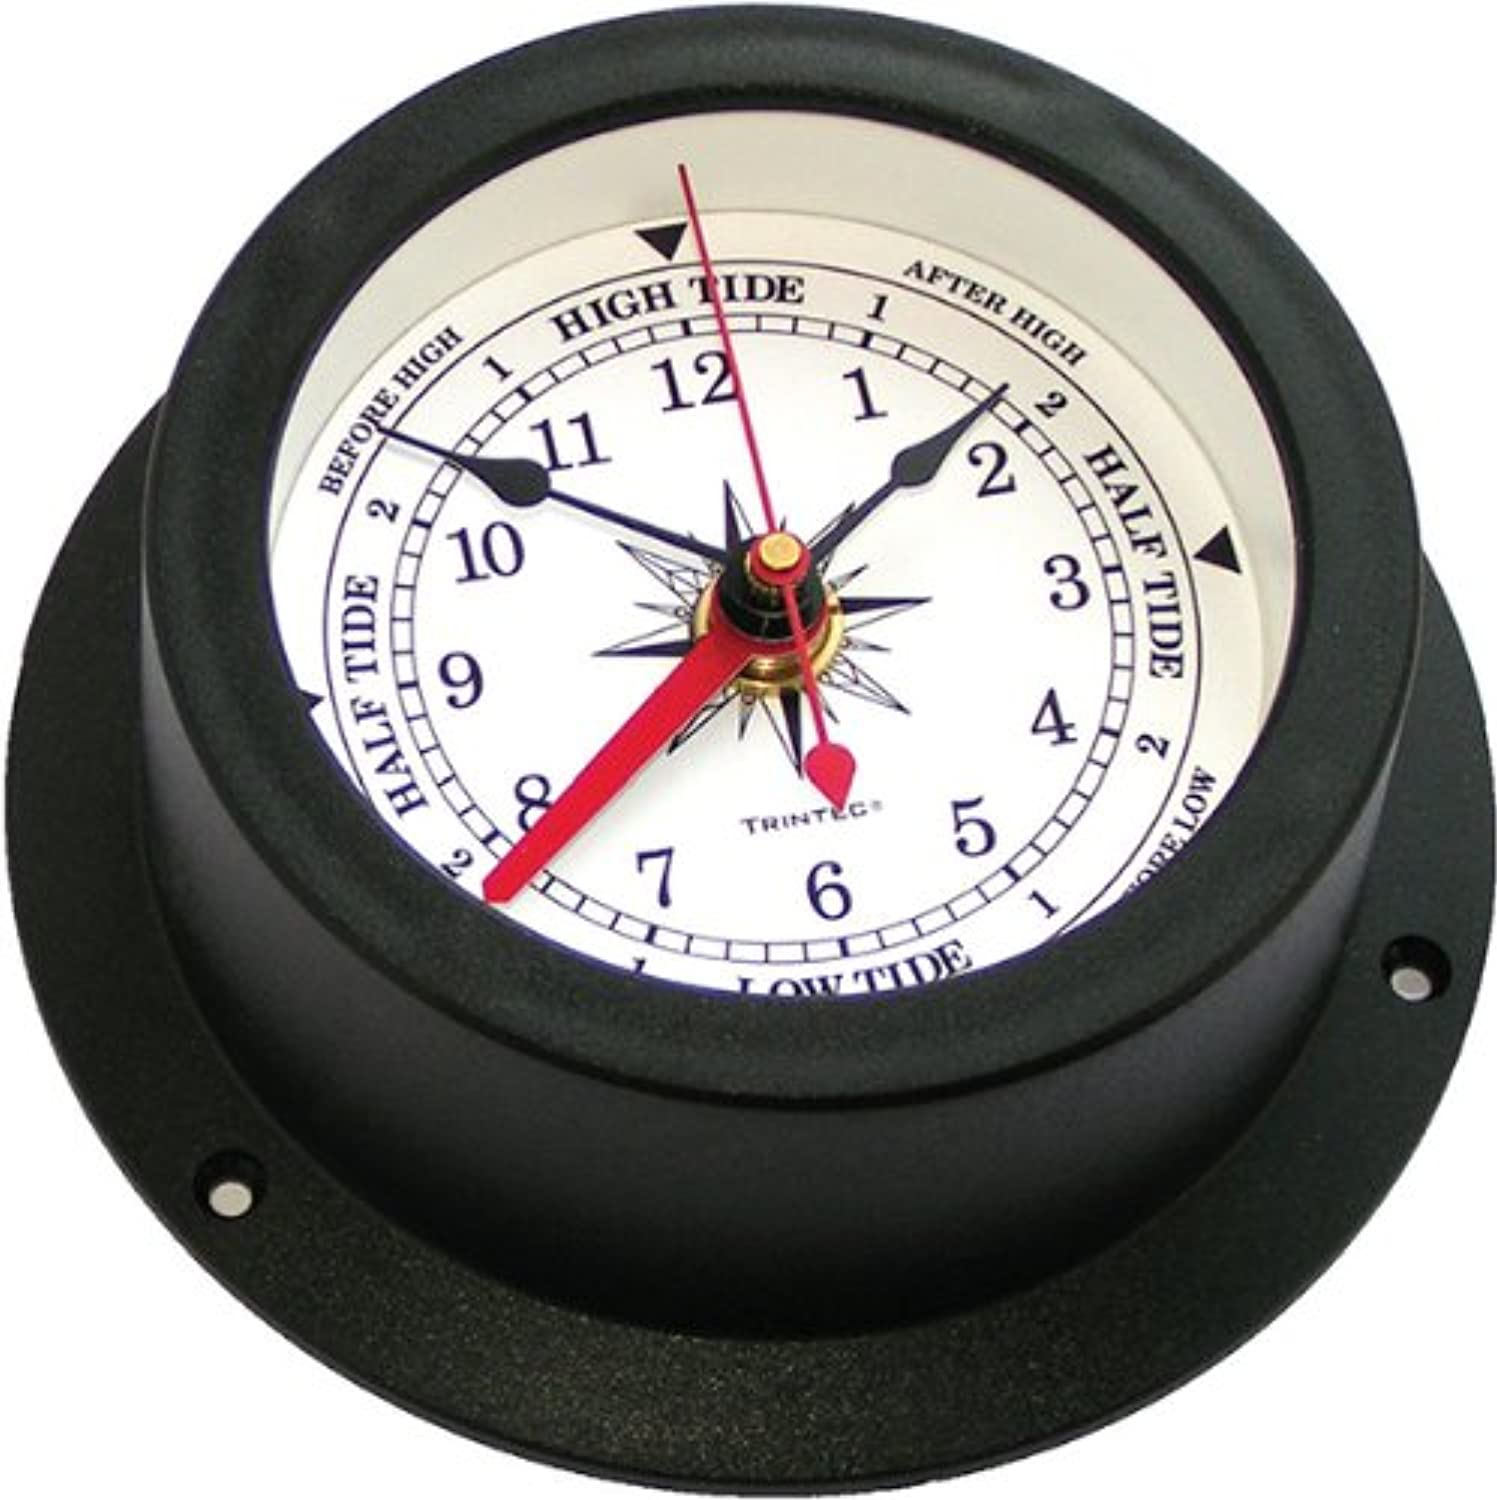 Trintec Vector Nautical Marine Vector Collection Tide & Time Clock (White) VECW02 High and Low Tide Indicator